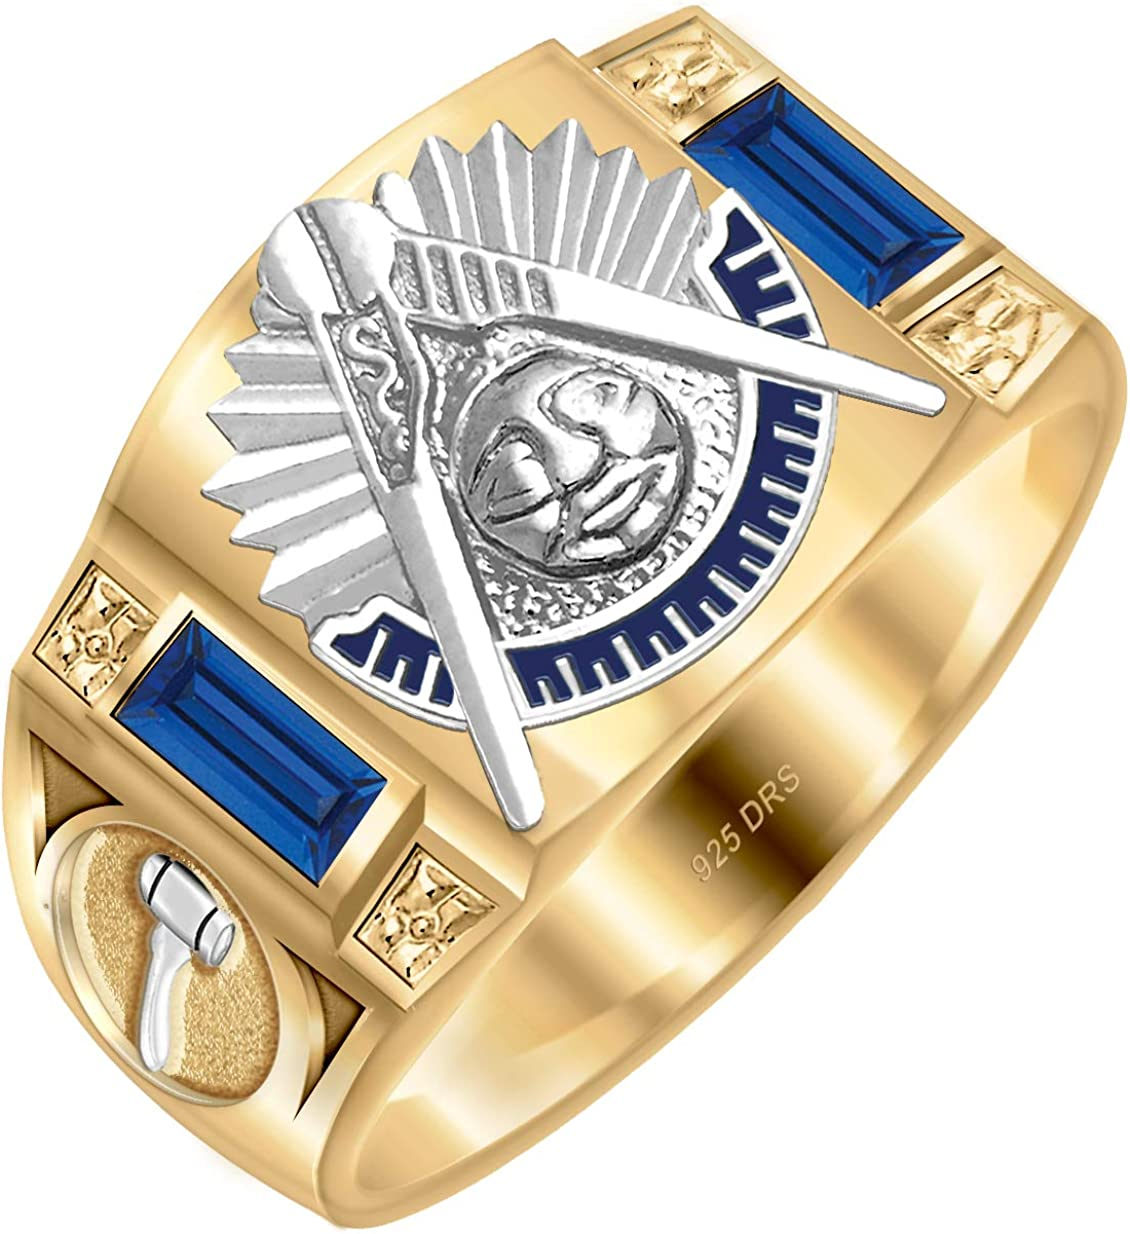 US Jewels And Gems Customizable Mens Solid Back Two Tone 0.925 Sterling Silver Simulated Sapphire Past Master Masonic Ring